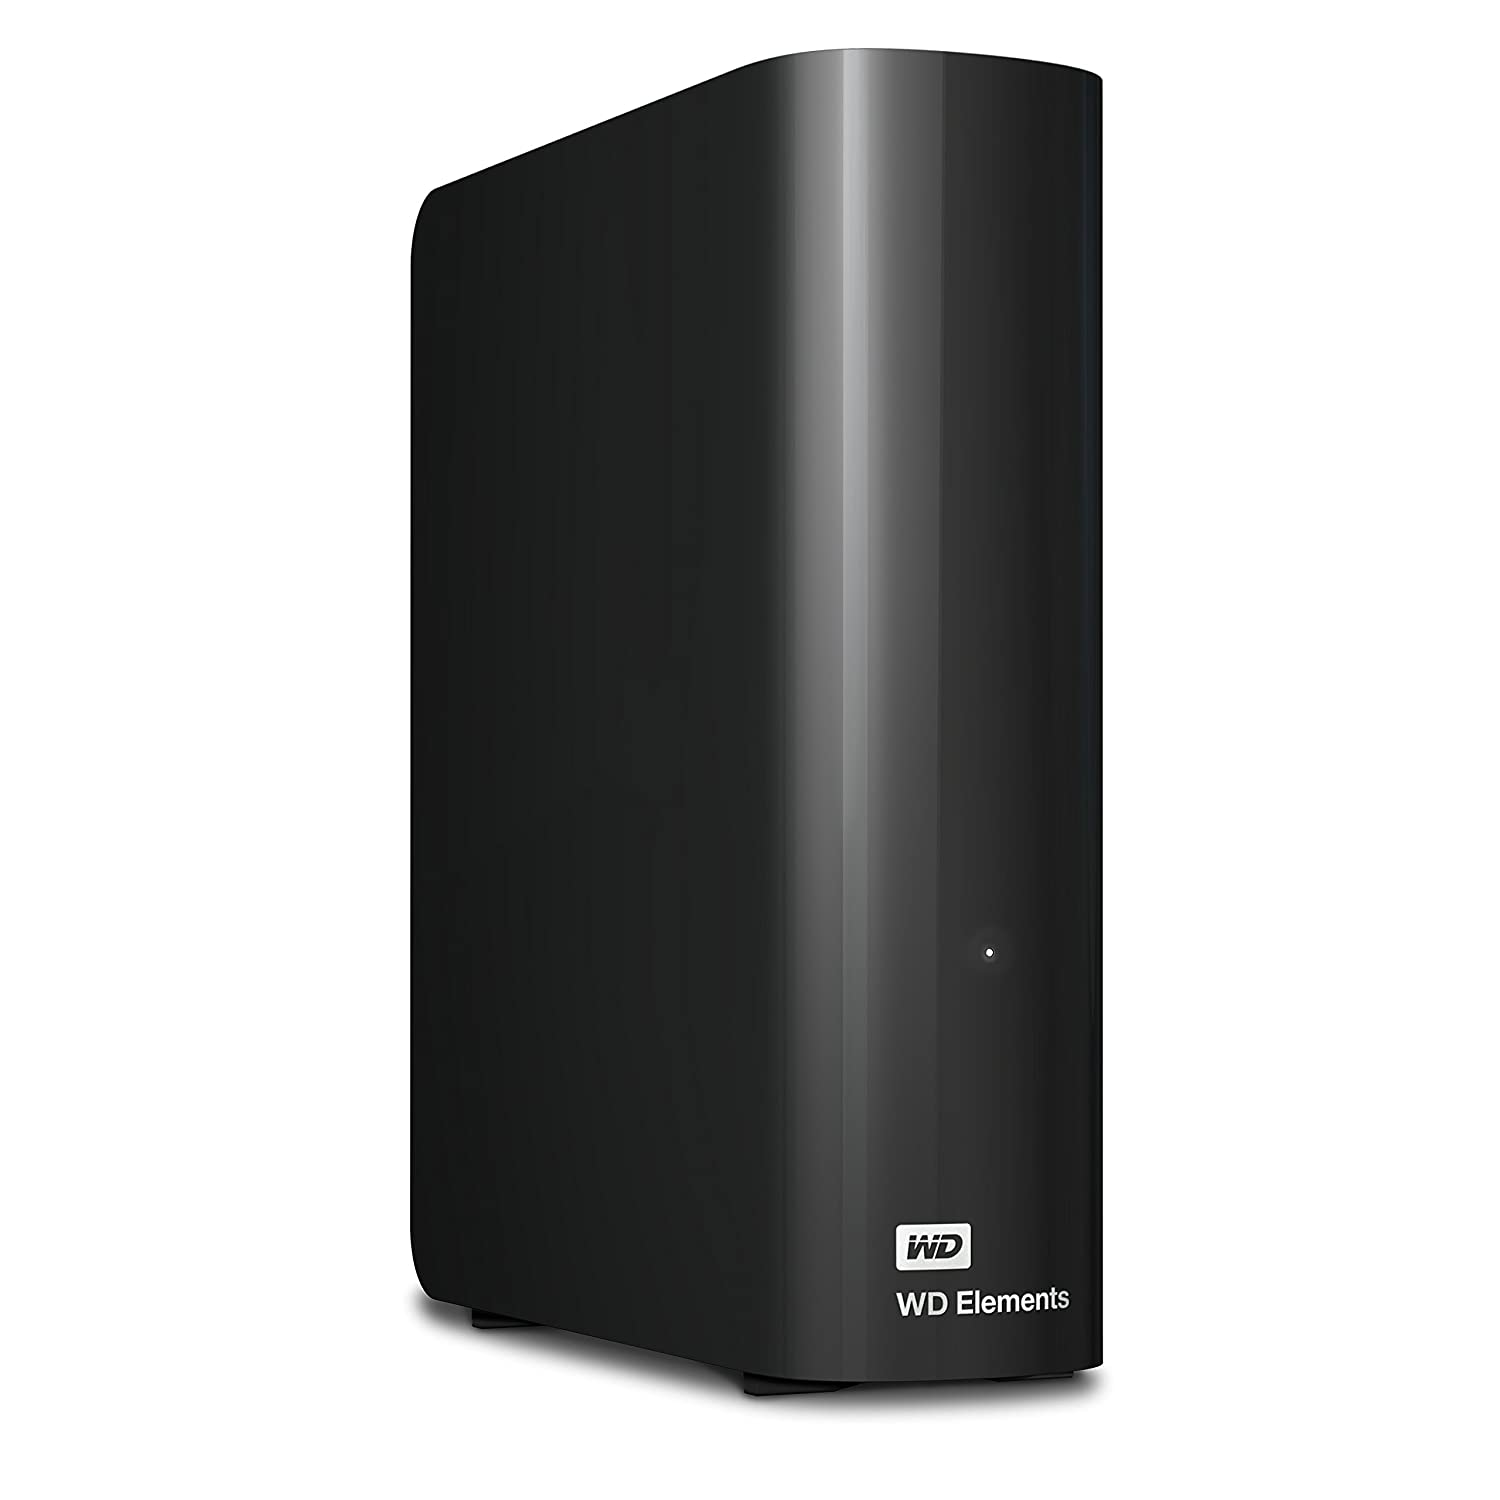 WD 10TB Elements Desktop Hard Drive - USB 3.0 - WDBWLG0100HBK-NESN Western Digital